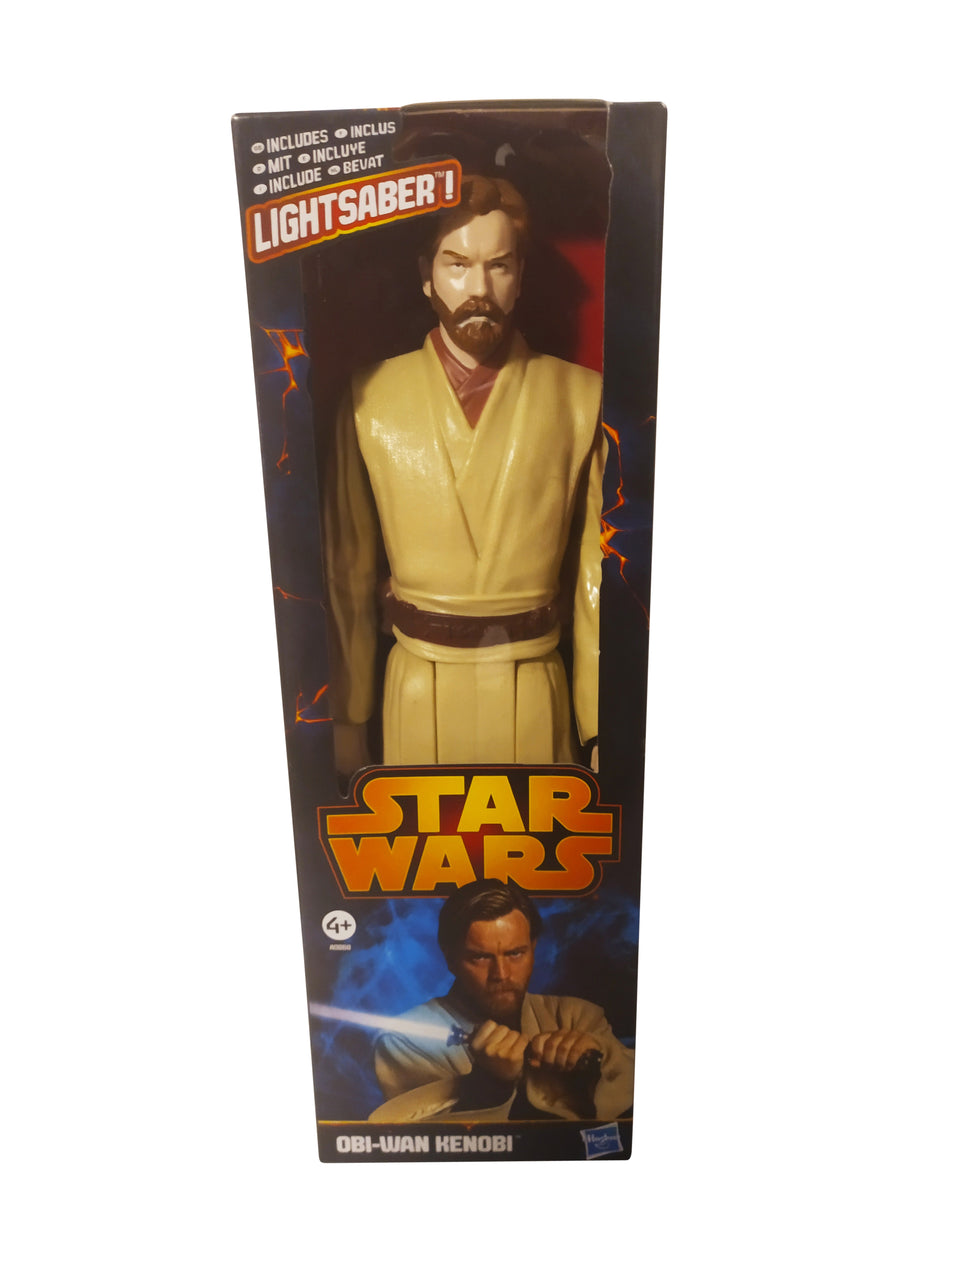 star wars figures stormtrooper and obi-wan kenobi